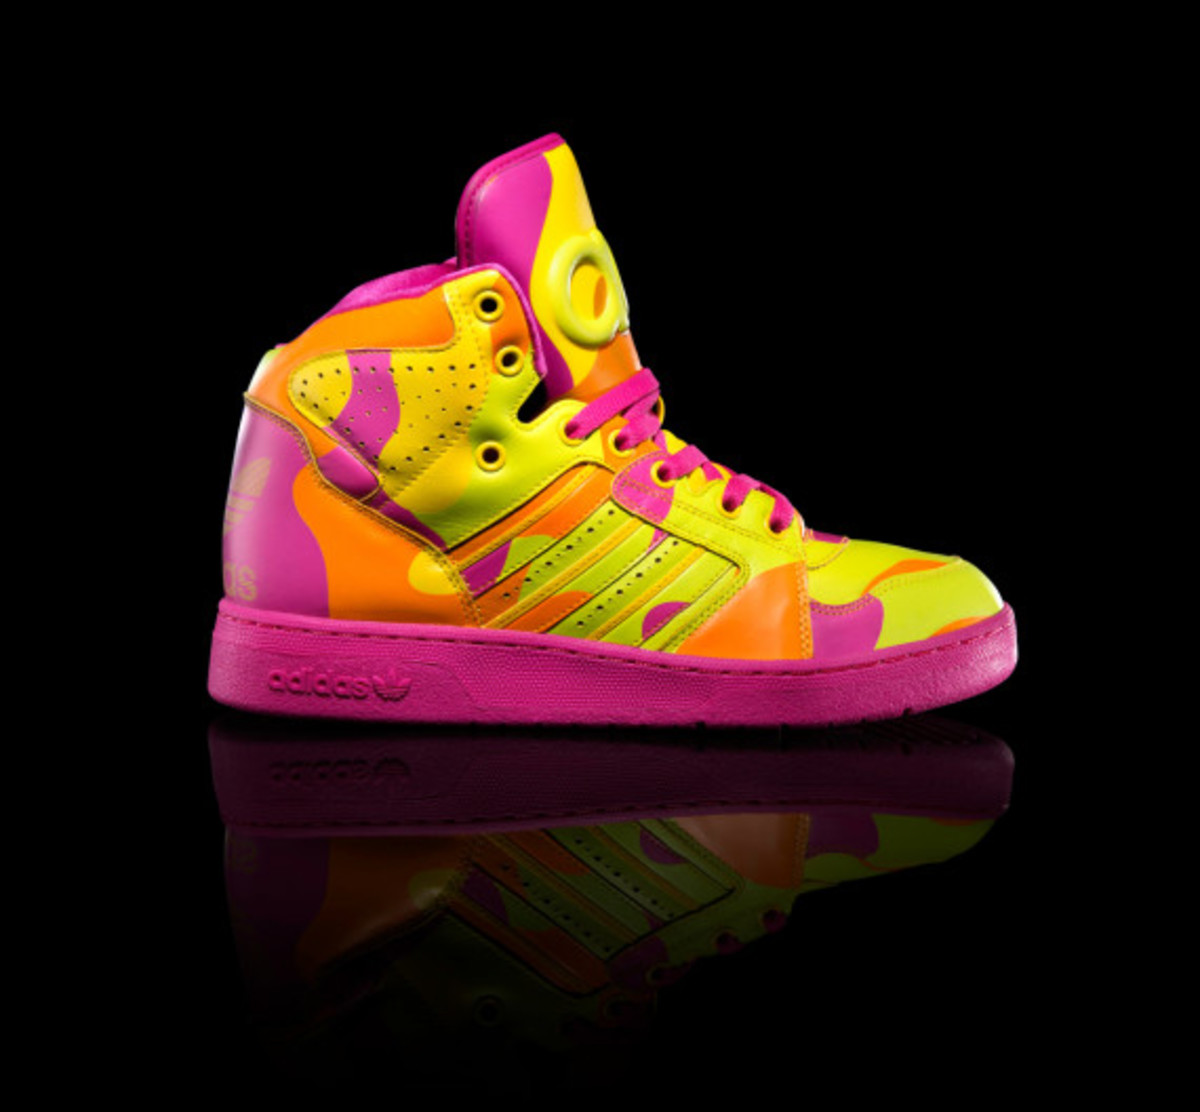 adidas-originals-by-jeremy-scott-fall-winter-2013-footwear-collection-15